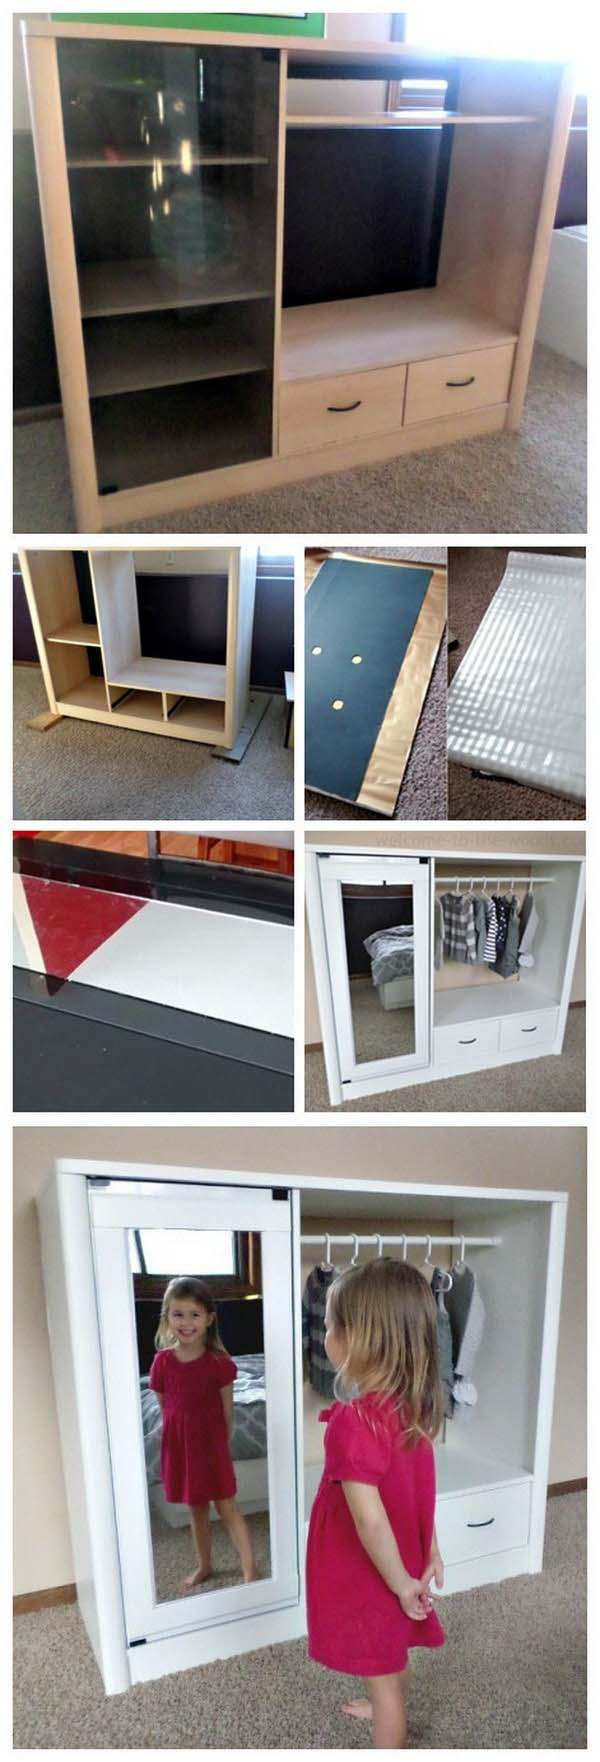 DIY Furniture Hack Project #diy #furniture #makeover #repurpose #decorhomeideas